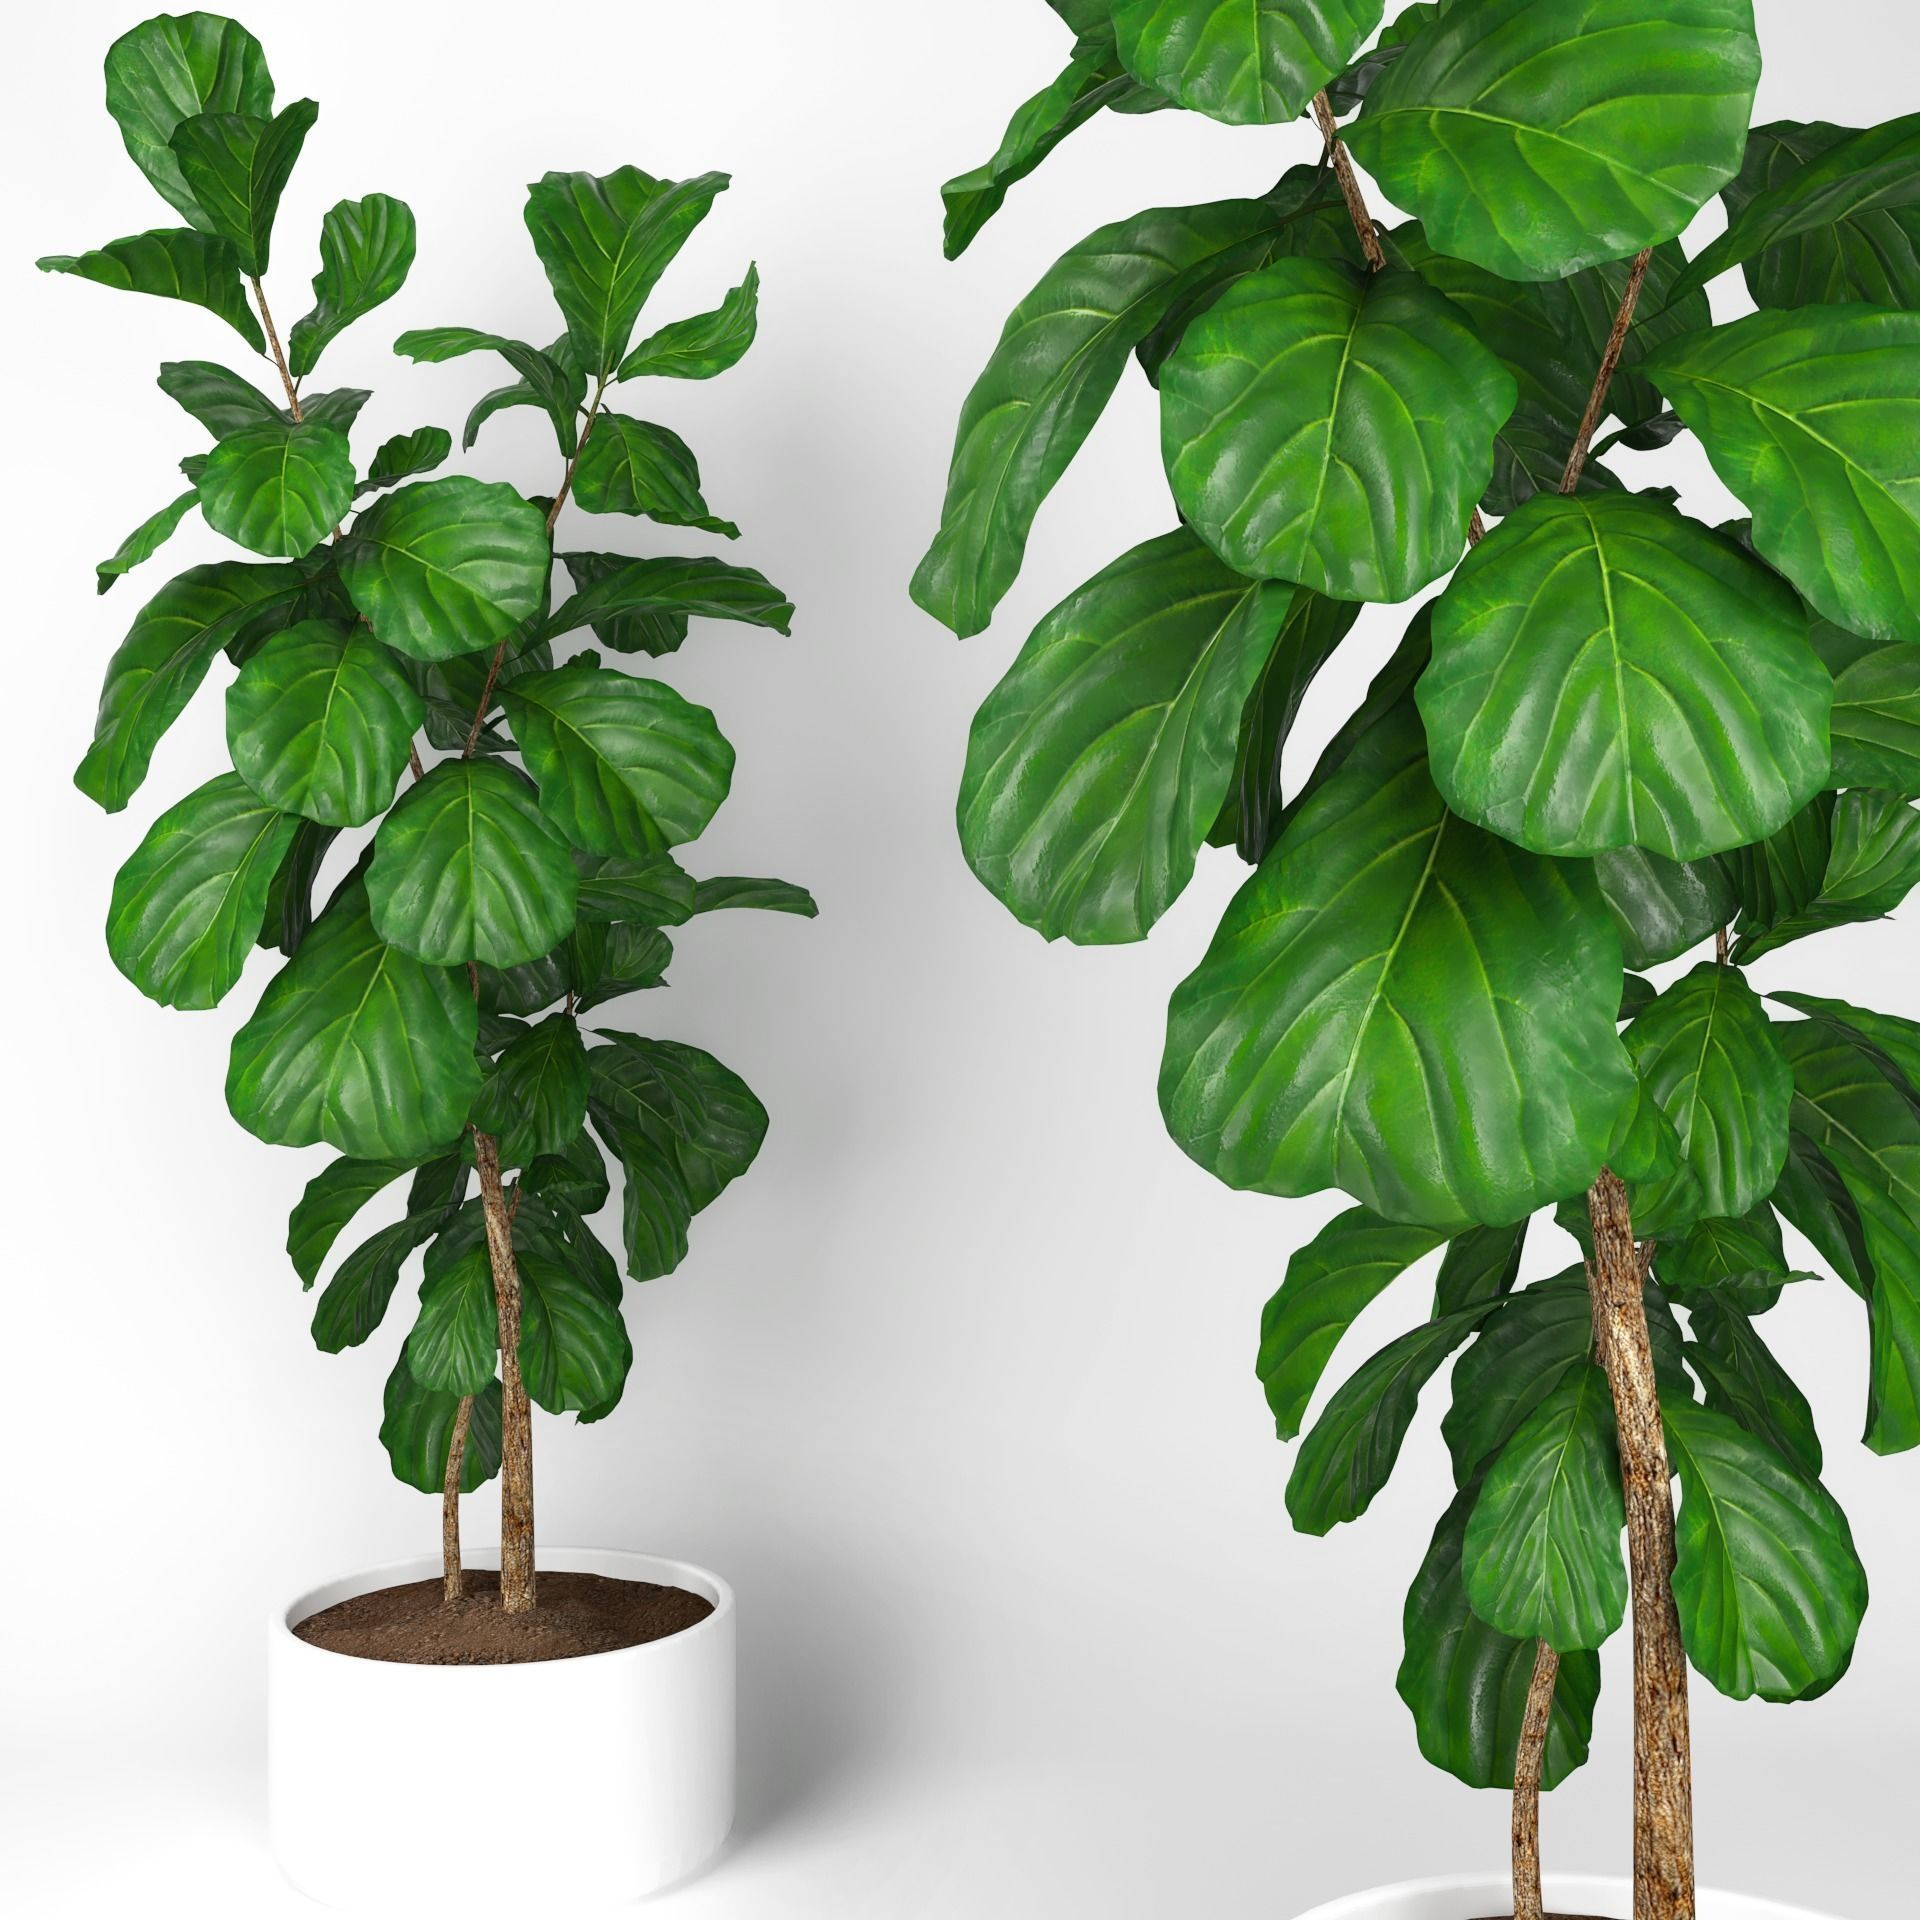 Fiddle Leaf Fig Tree 3d Model Max Obj Mtl 1 ...